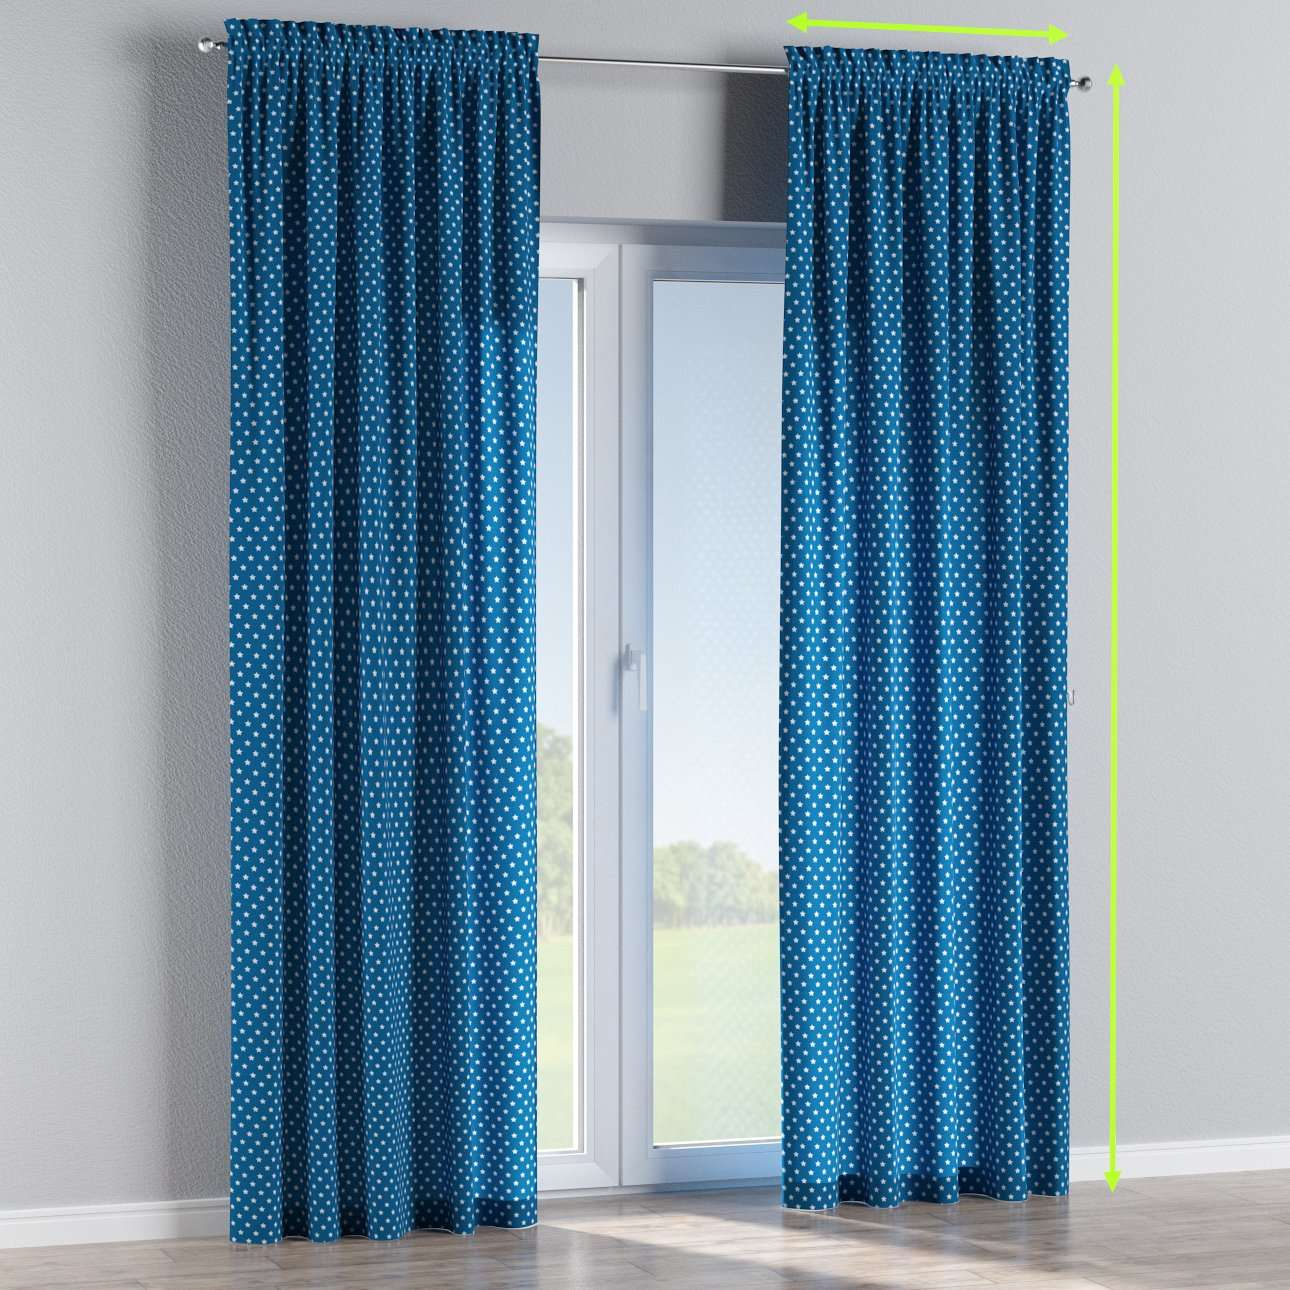 Slot and frill lined curtains in collection Ashley, fabric: 137-72